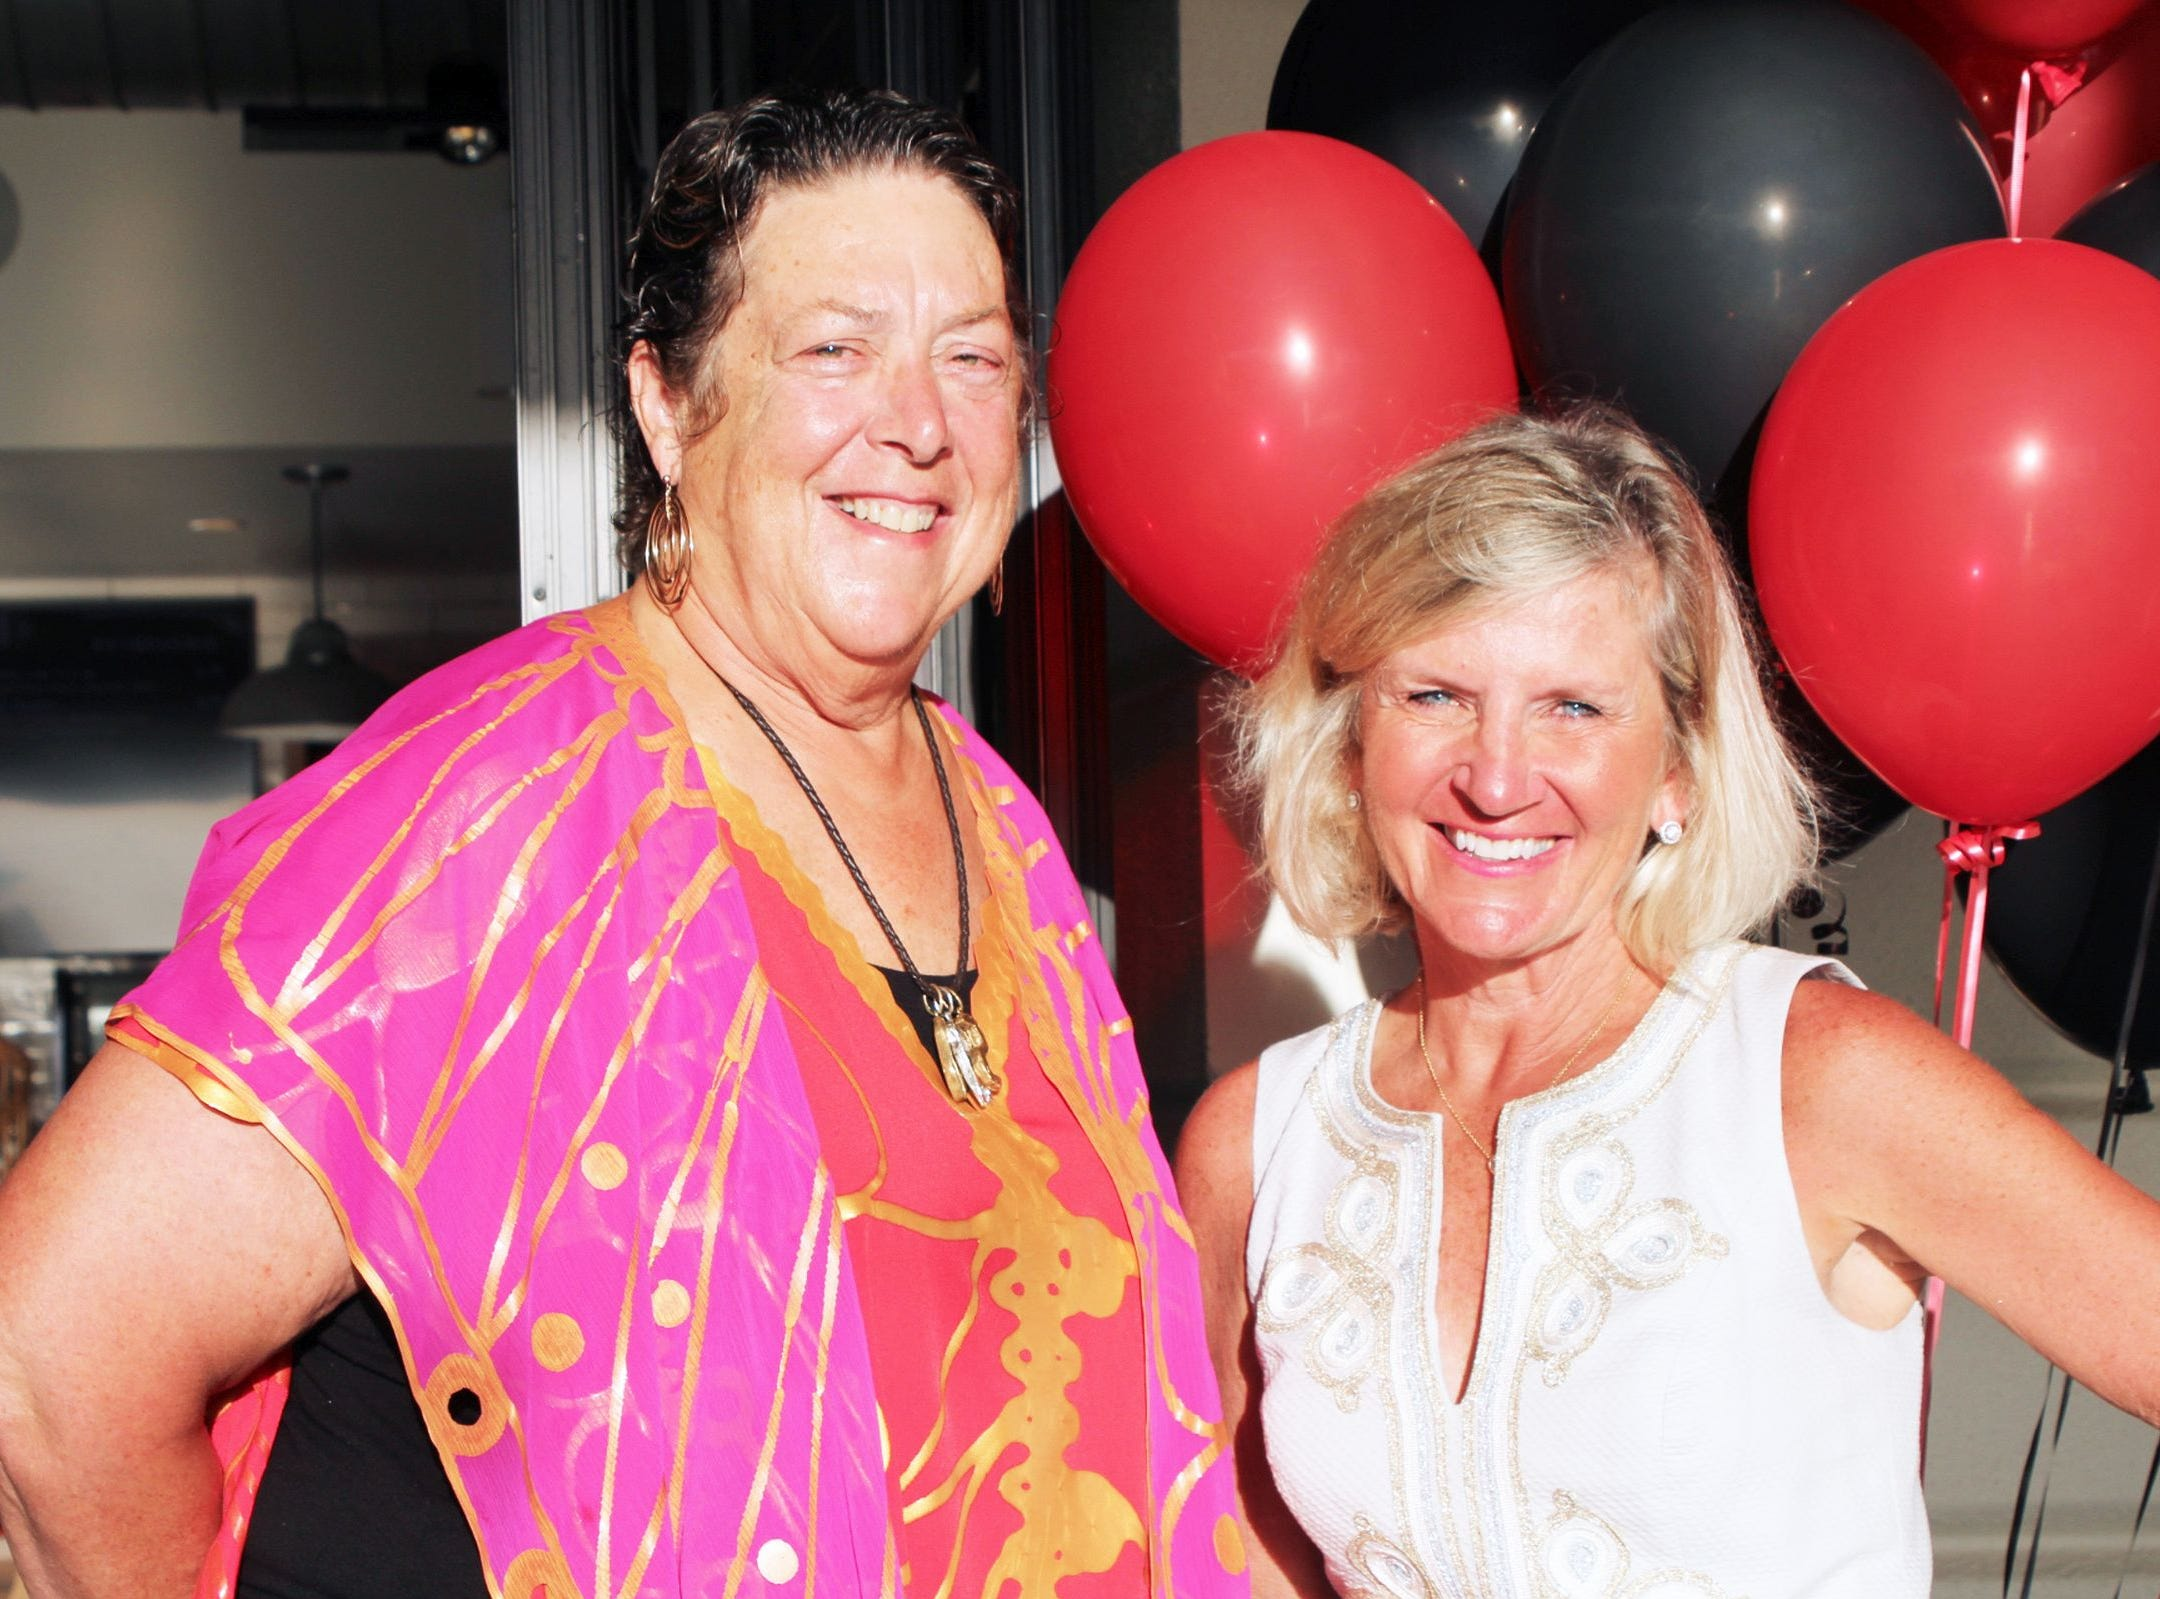 Susan Vanderstricht and Debra Littleson at the John's Island Community Service League's annual gala on March 9.